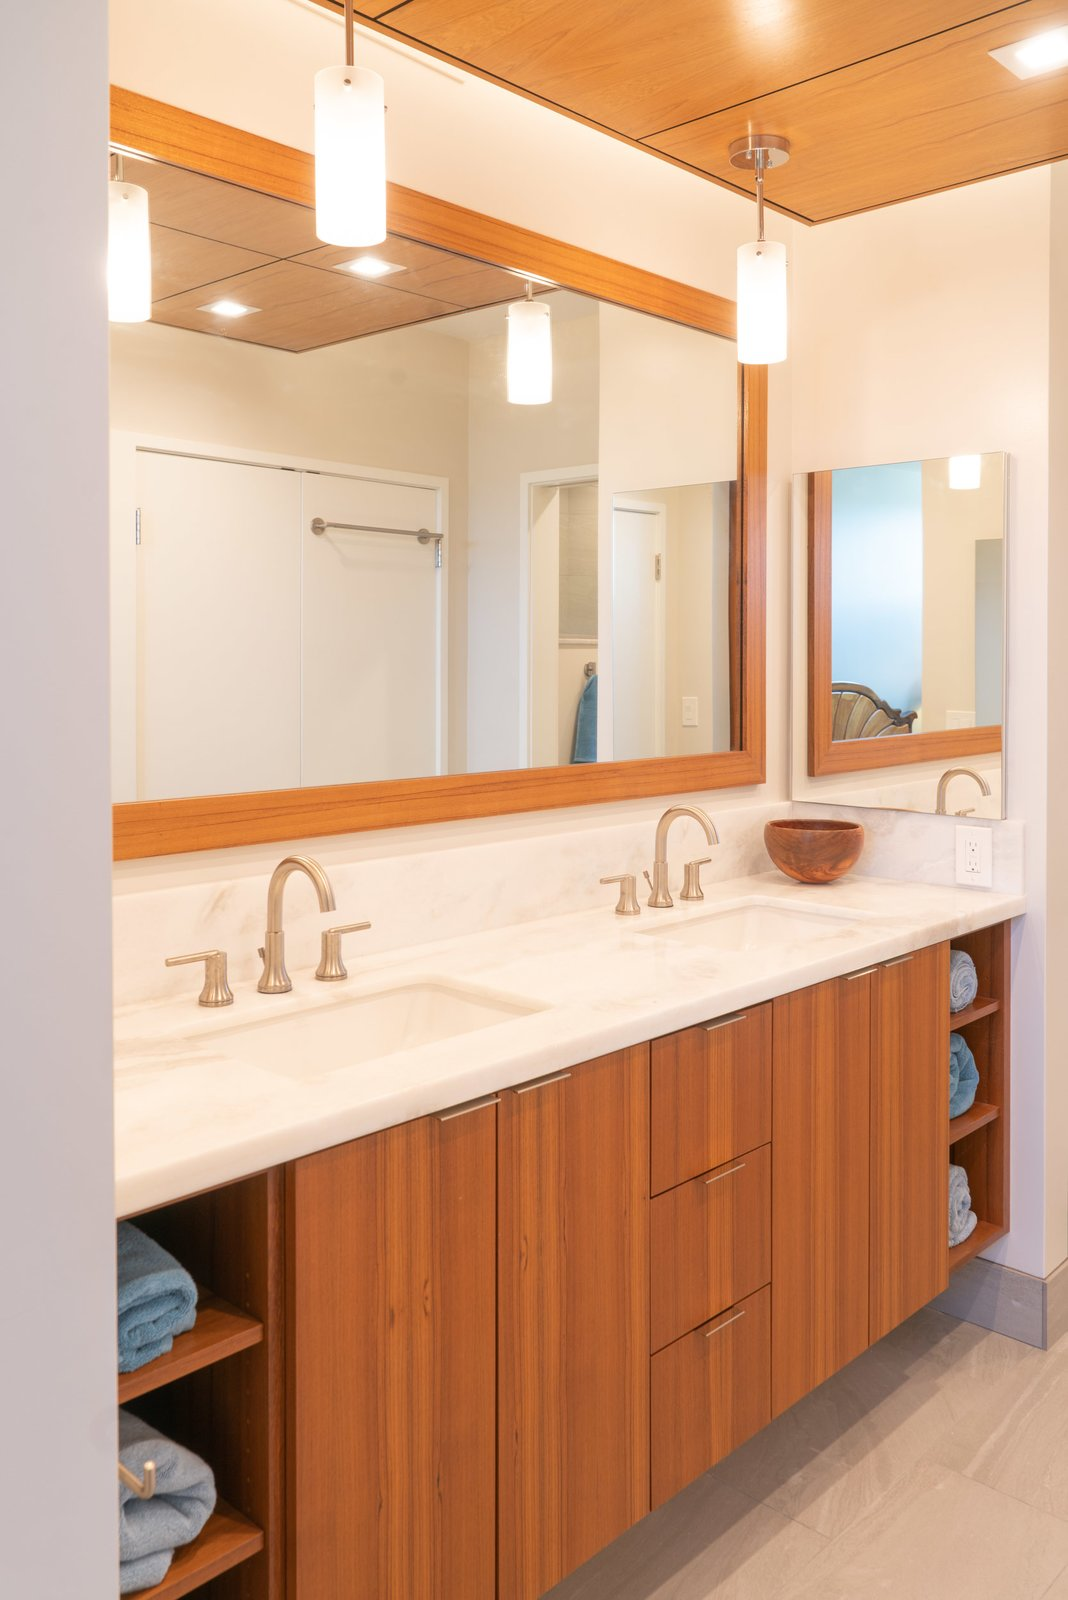 Bath Room, Accent Lighting, Pendant Lighting, Undermount Sink, Granite Counter, Recessed Lighting, Ceiling Lighting, Open Shower, and Ceramic Tile Floor  Scott Residence by District Architecture + Design